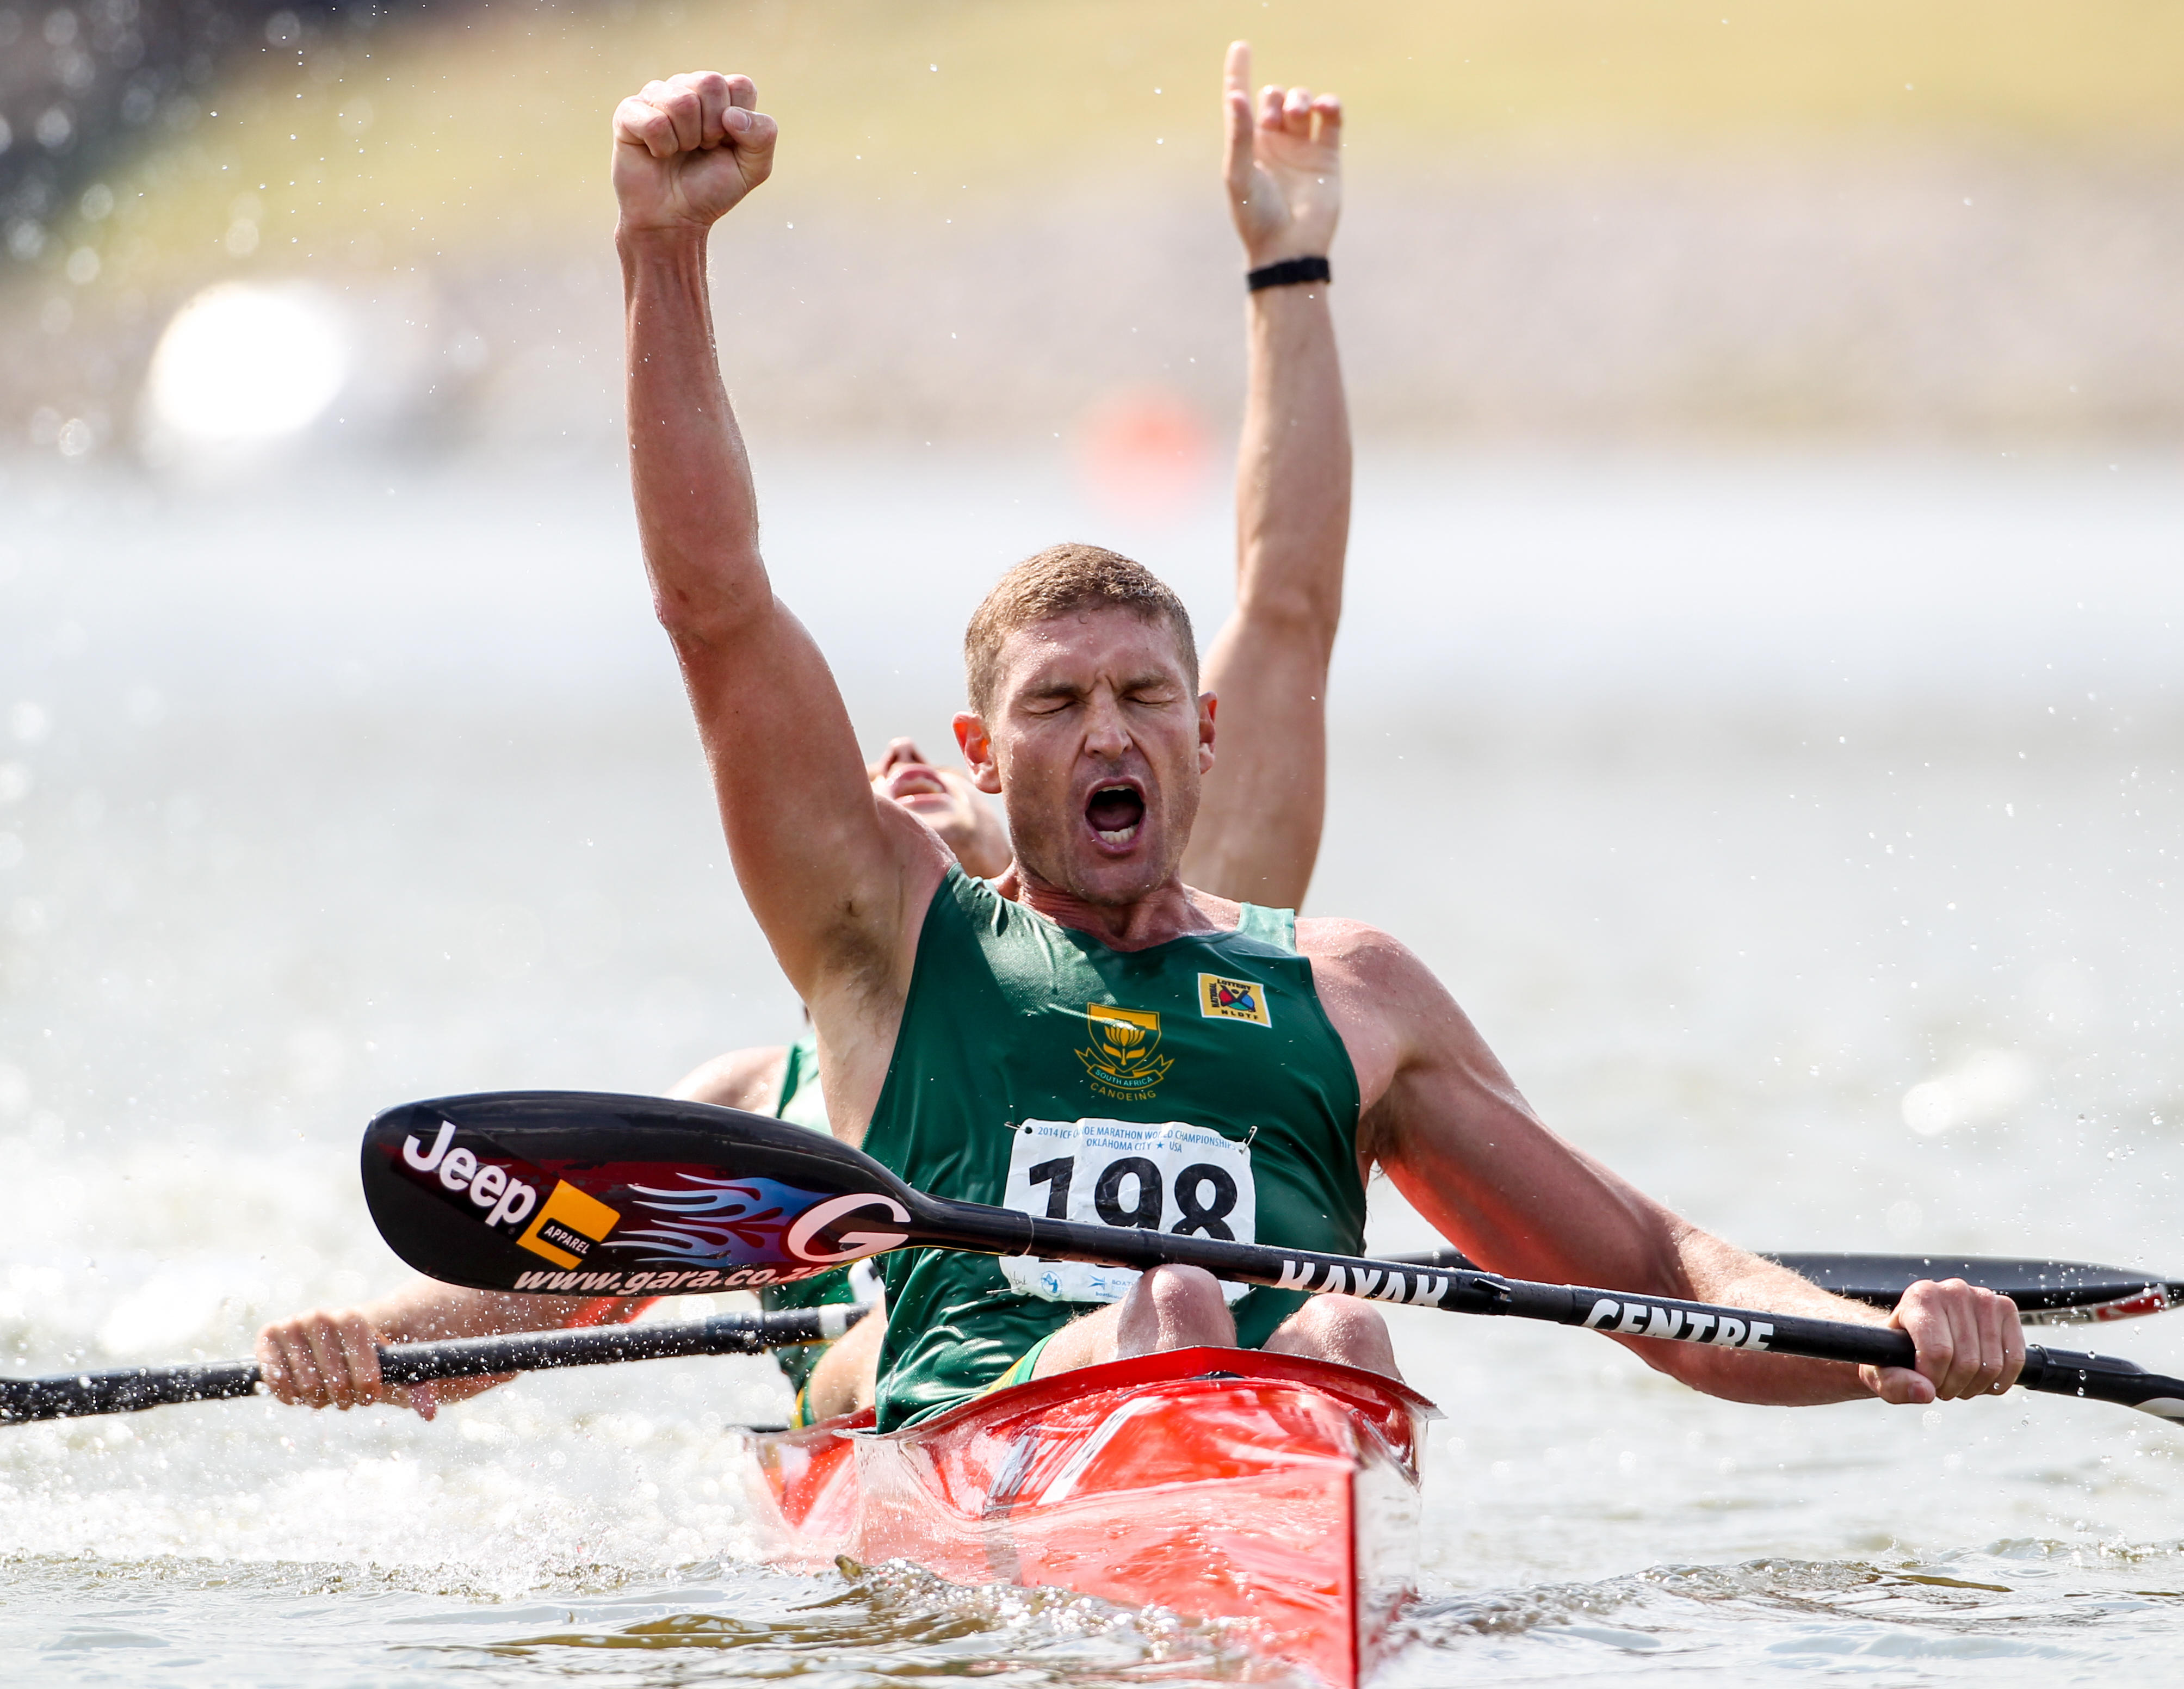 McGregor makes history with double gold at World Champs ...